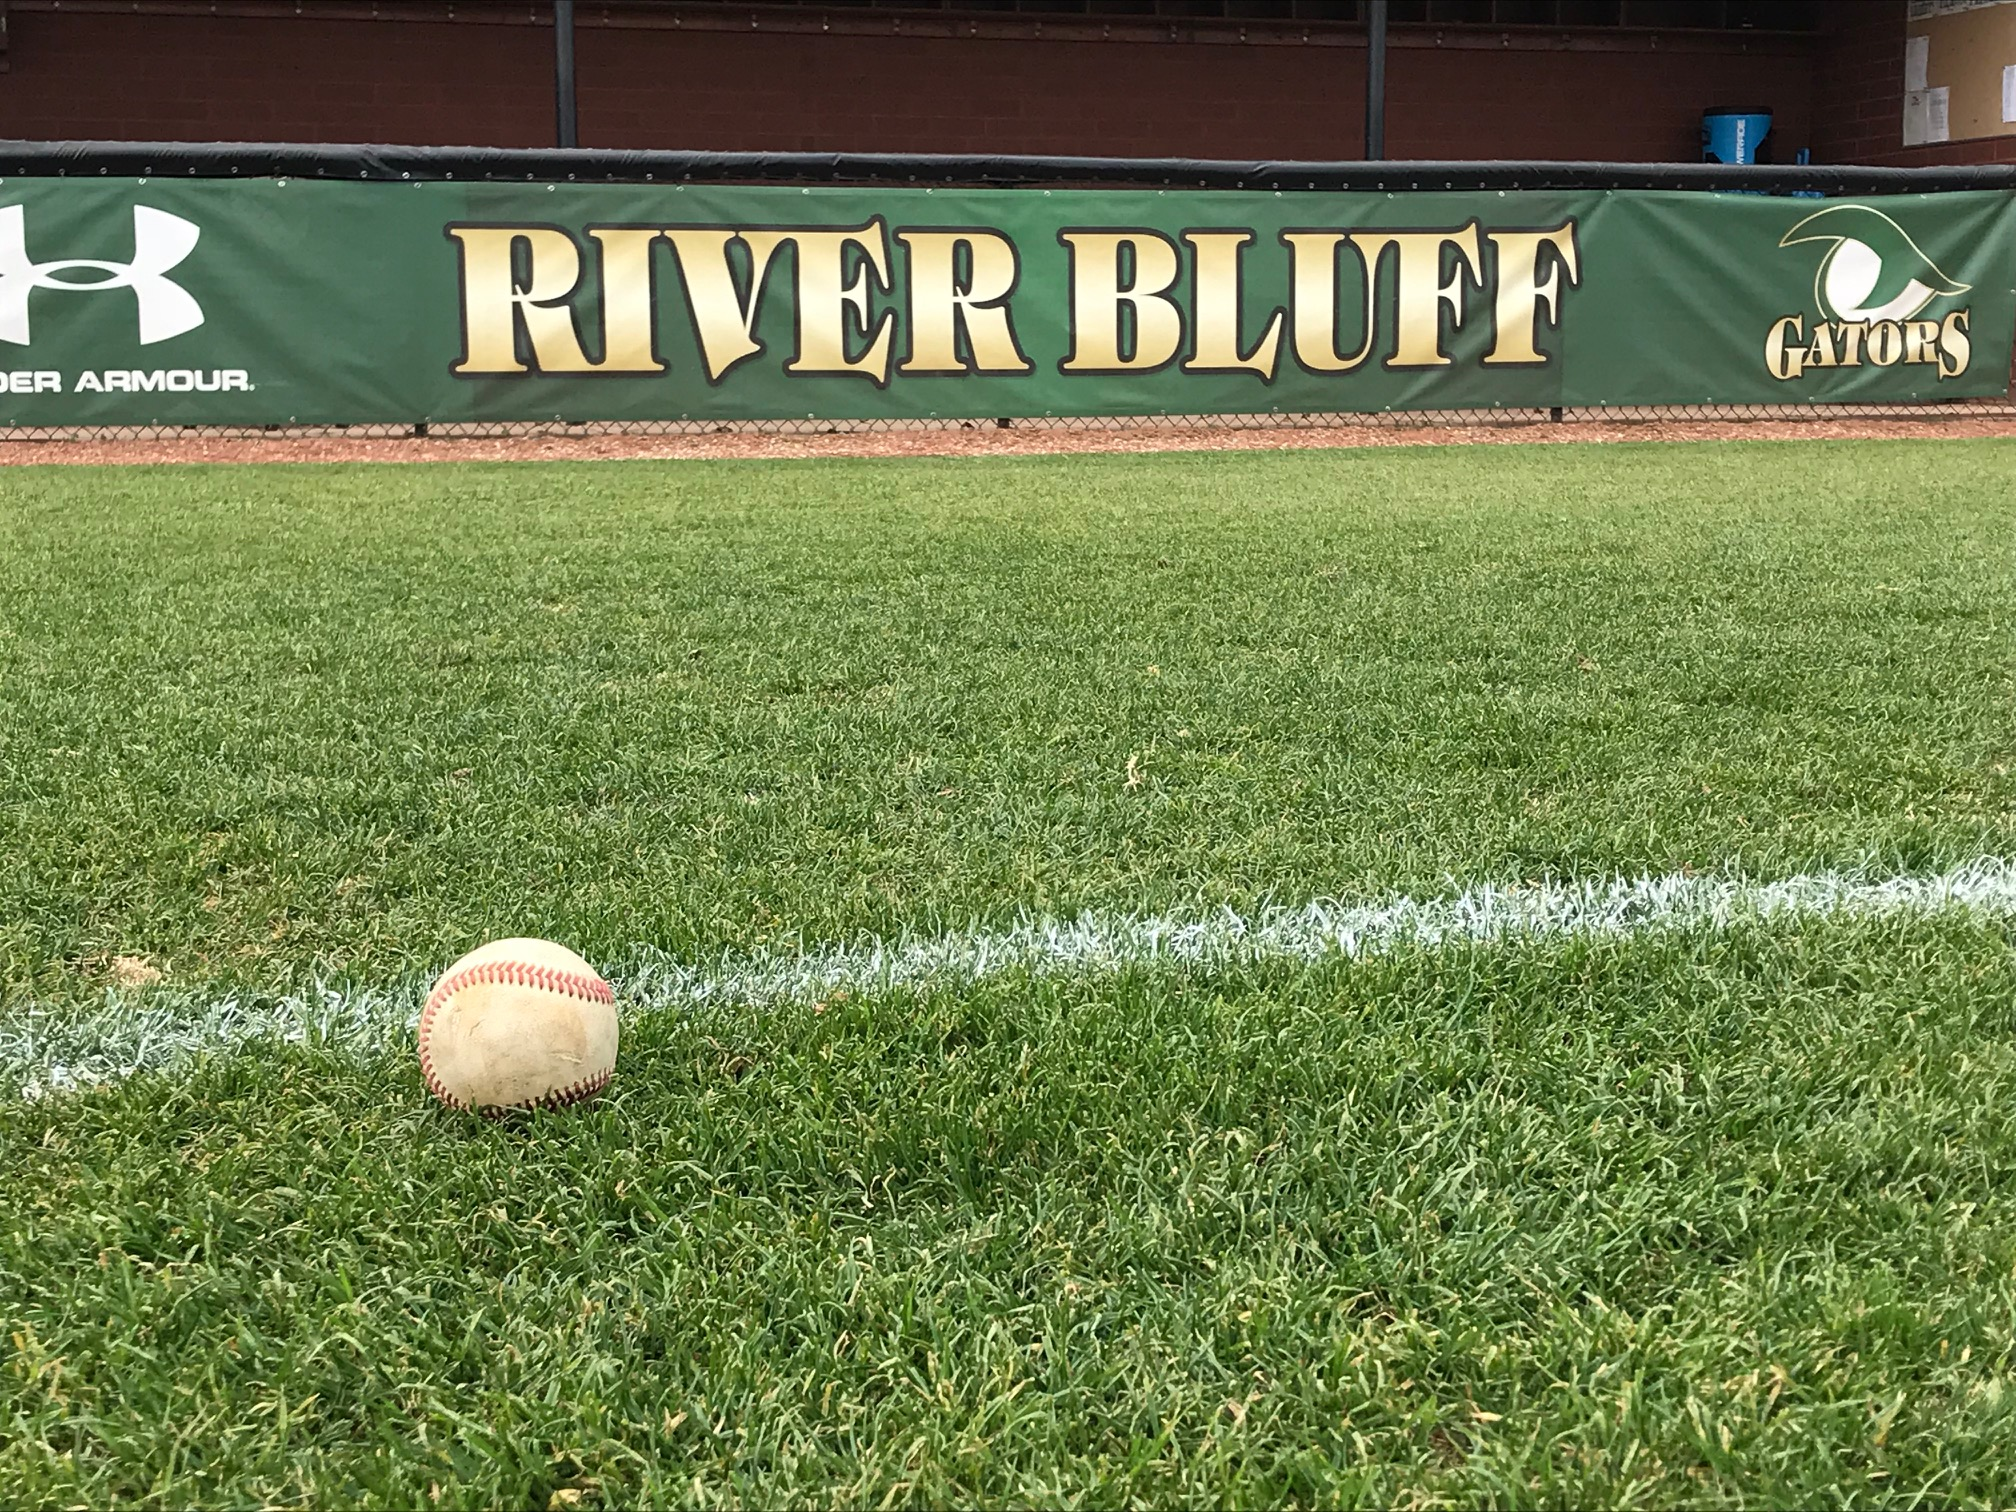 Gator Baseball Releases Schedules for 2019 Varsity, JV, and B-team